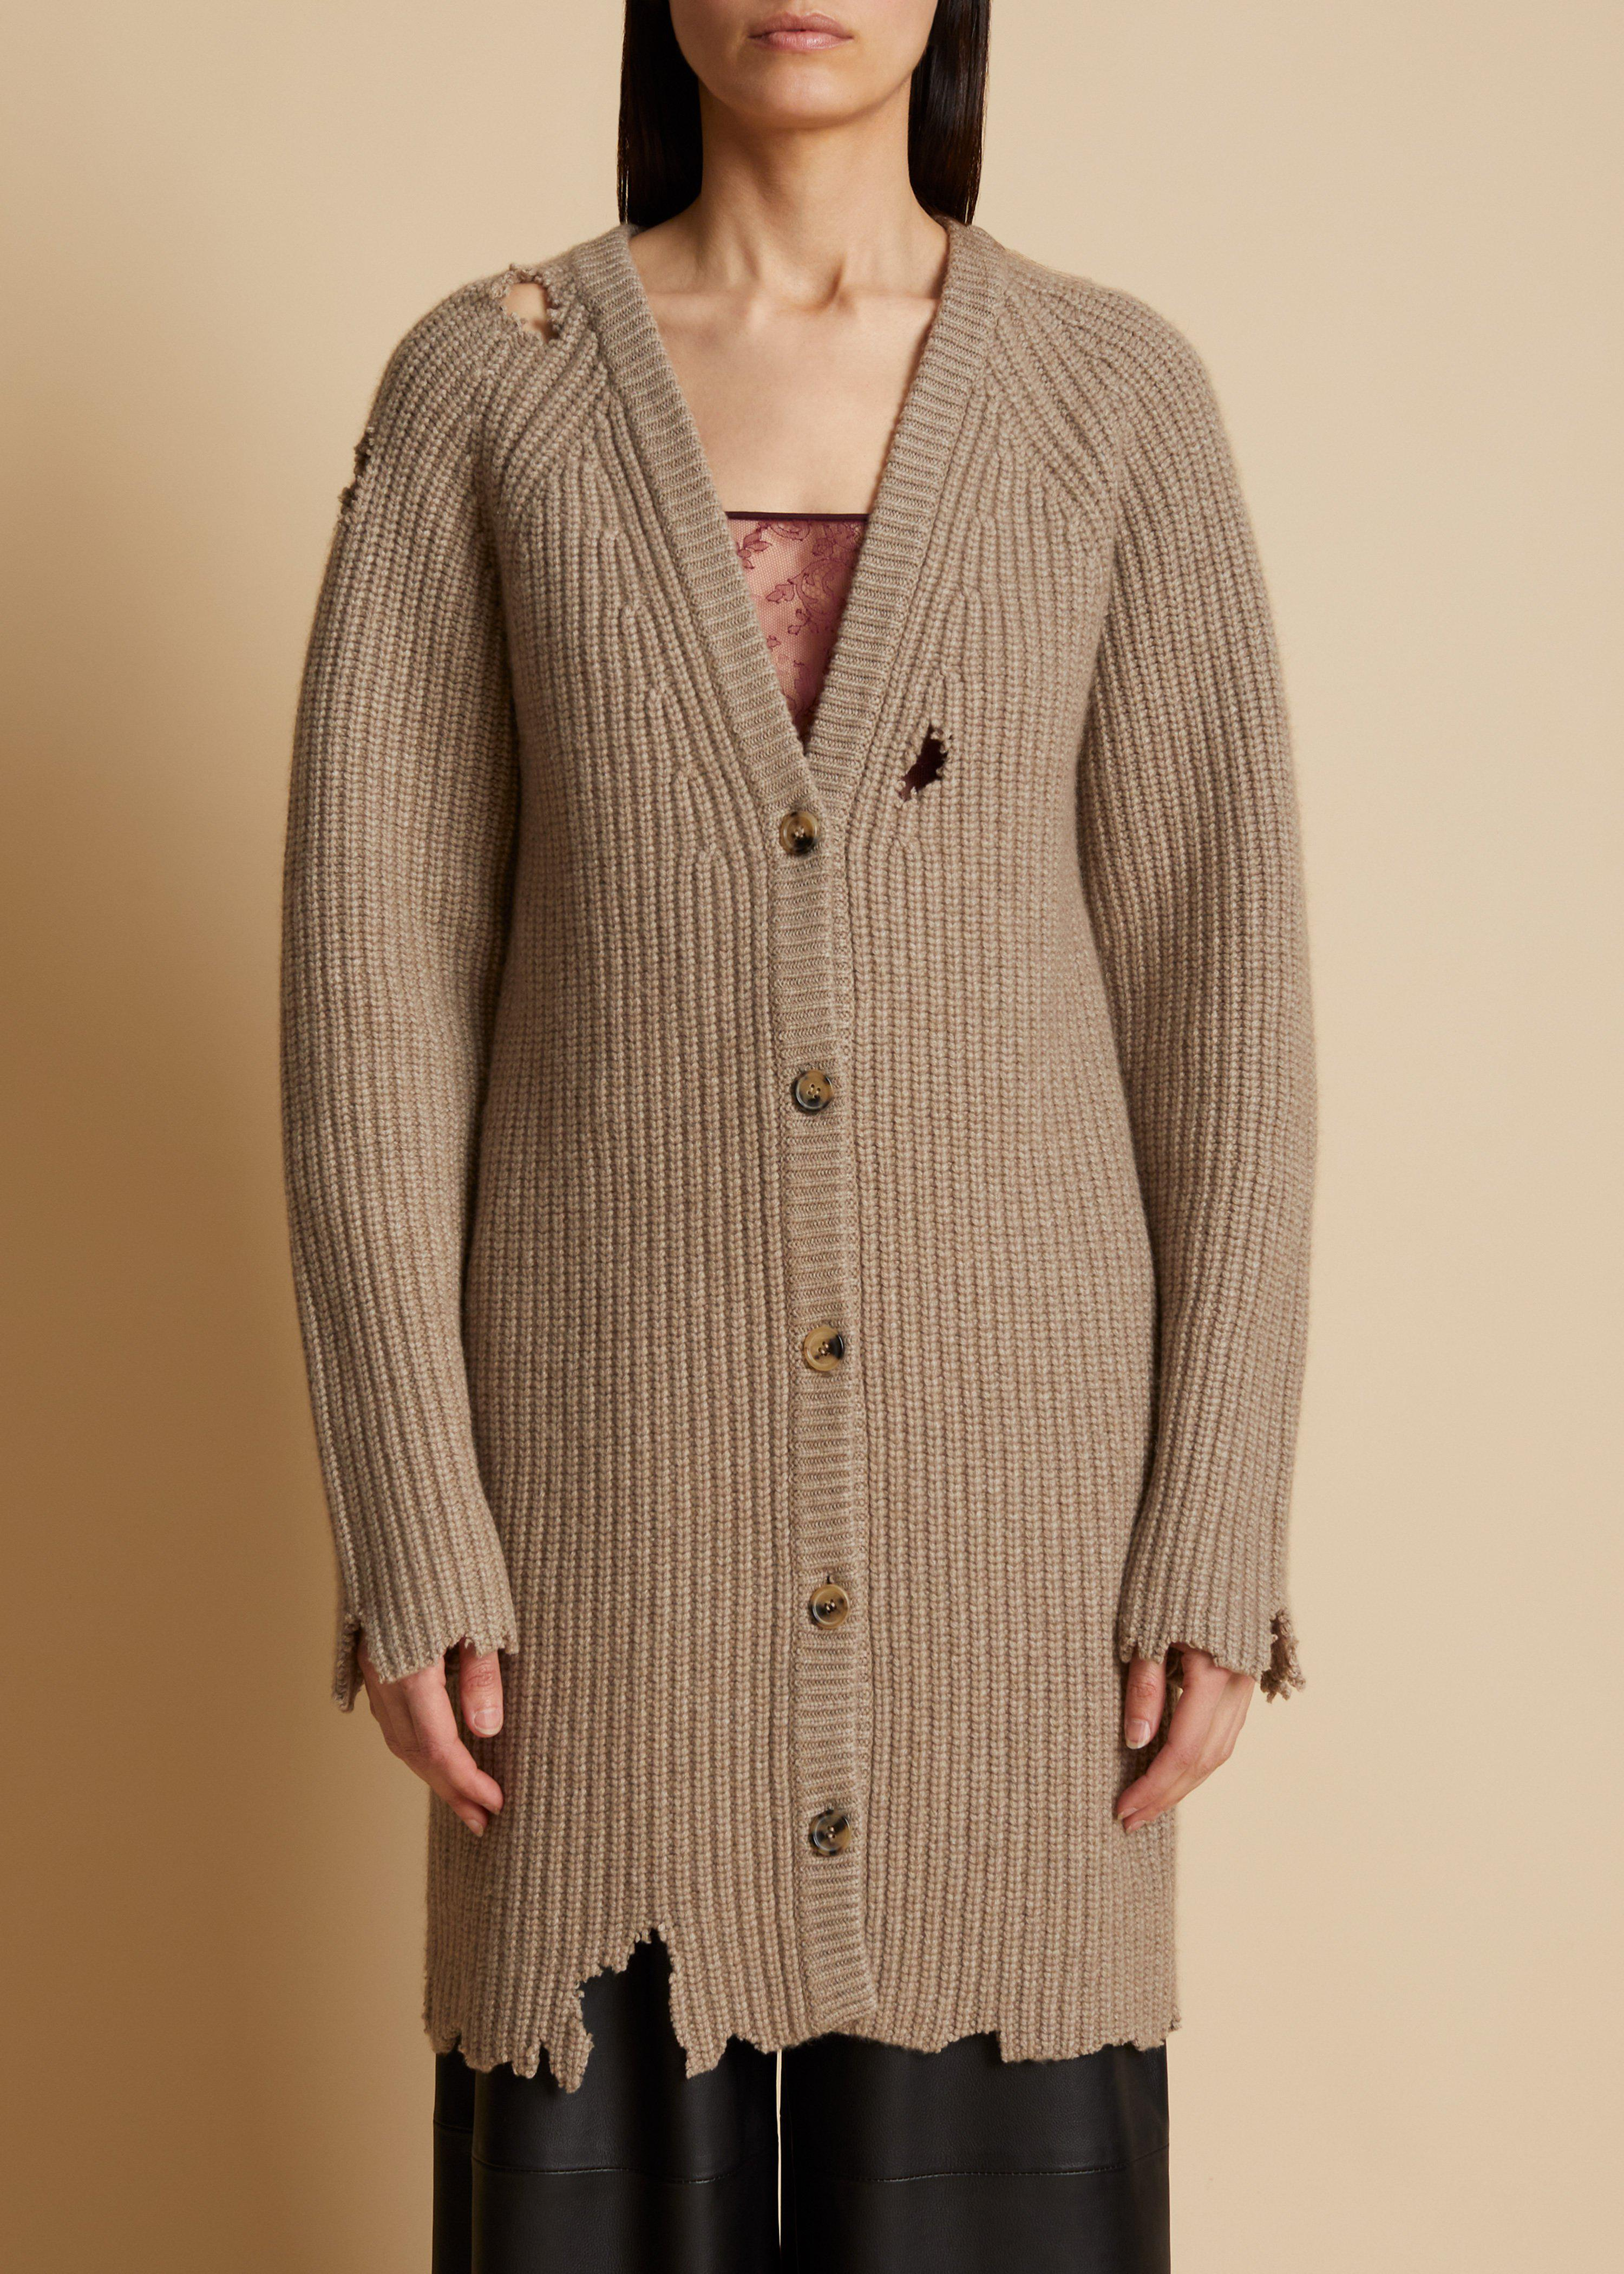 The Rory Distressed Cardigan in Husk